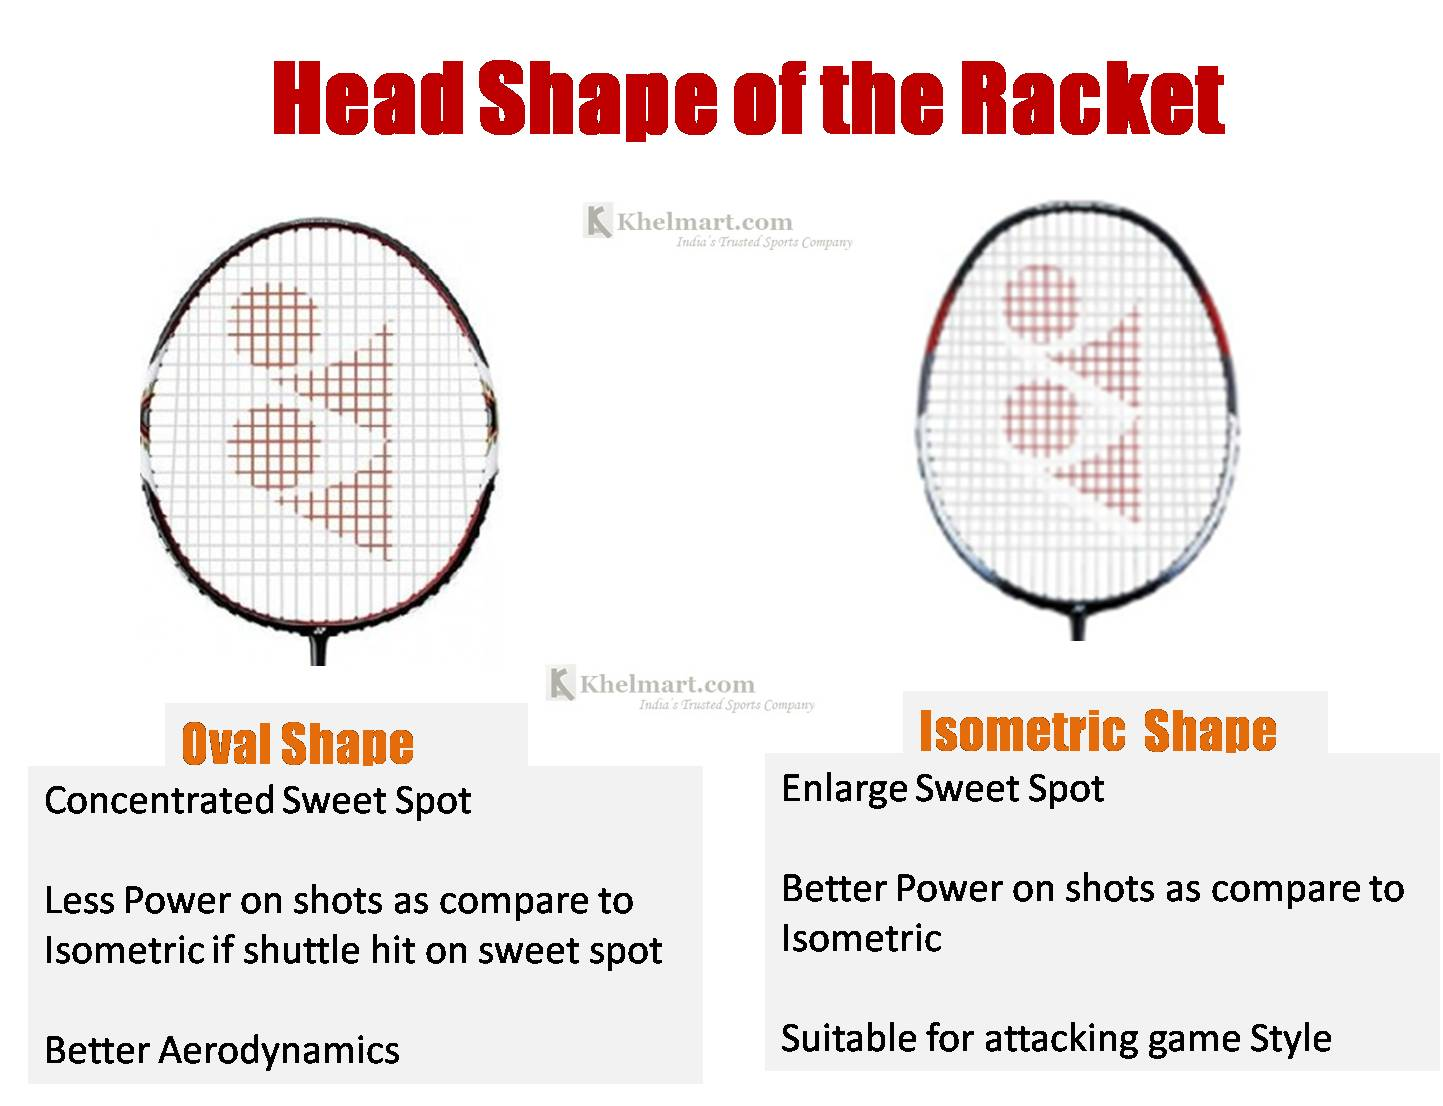 Racket_Head_SHape_Badminton_racket_Khelmart.jpg